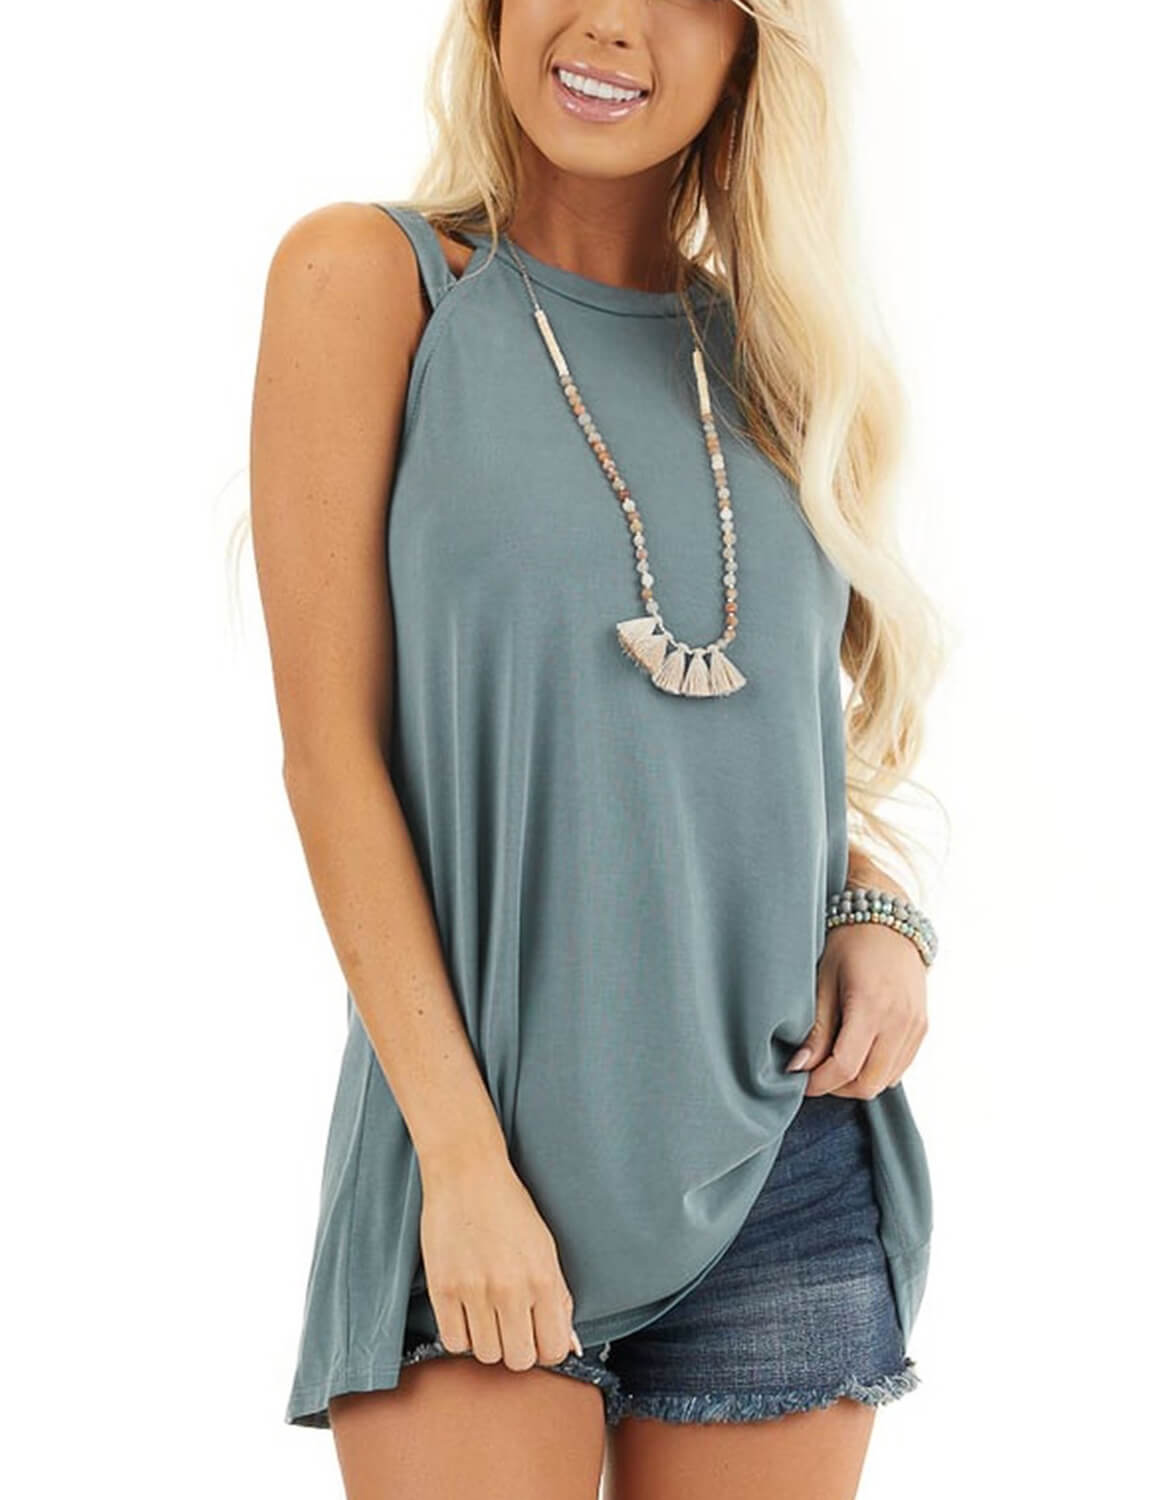 Blooming Jelly_Cutout Tunic Sleeveless Tank Top_Steel Blue_155359_02_Summer Women Casual Outfits_Tops_Blouse